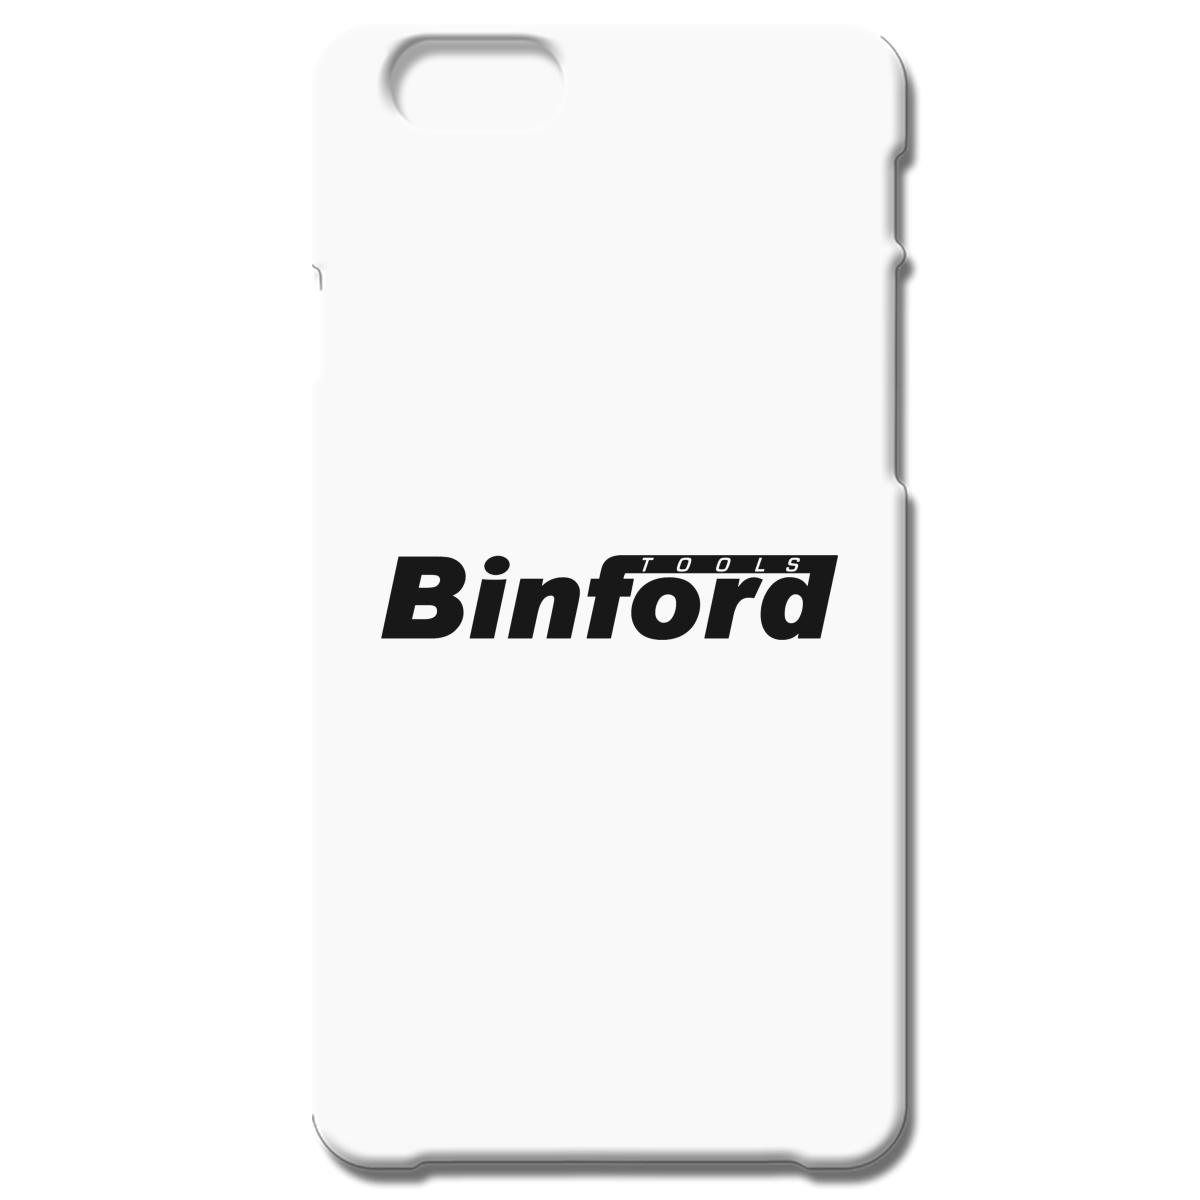 Binford Tools Real Men Dont Need Instructions Iphone 66s Plus Case